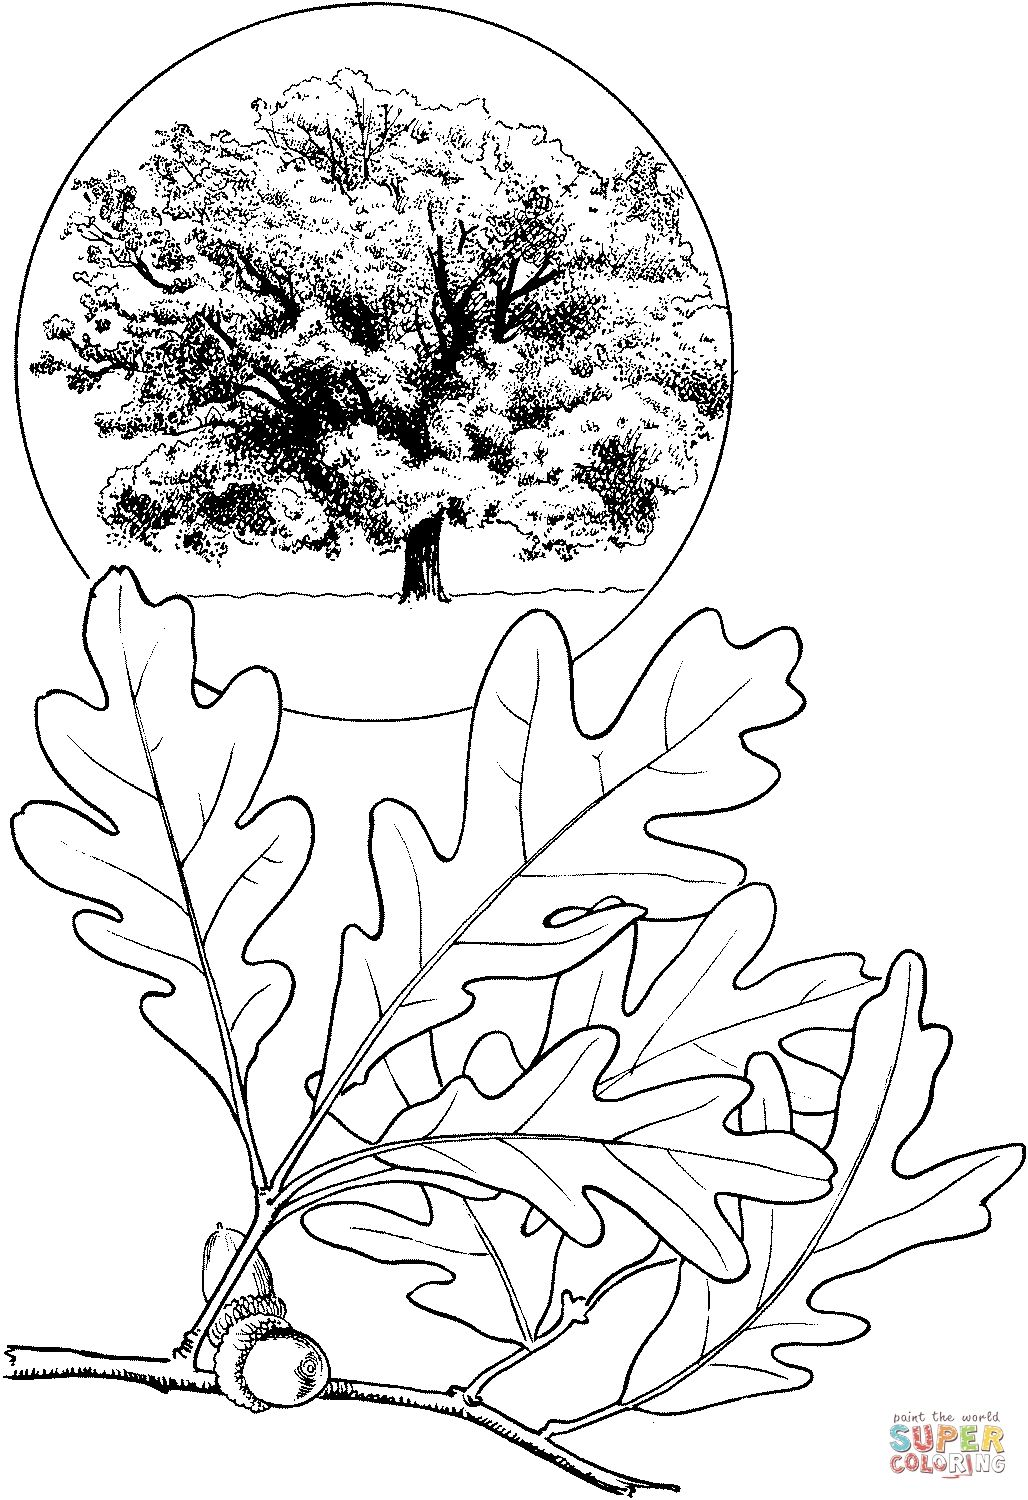 White Oak Tree Coloring Page Free